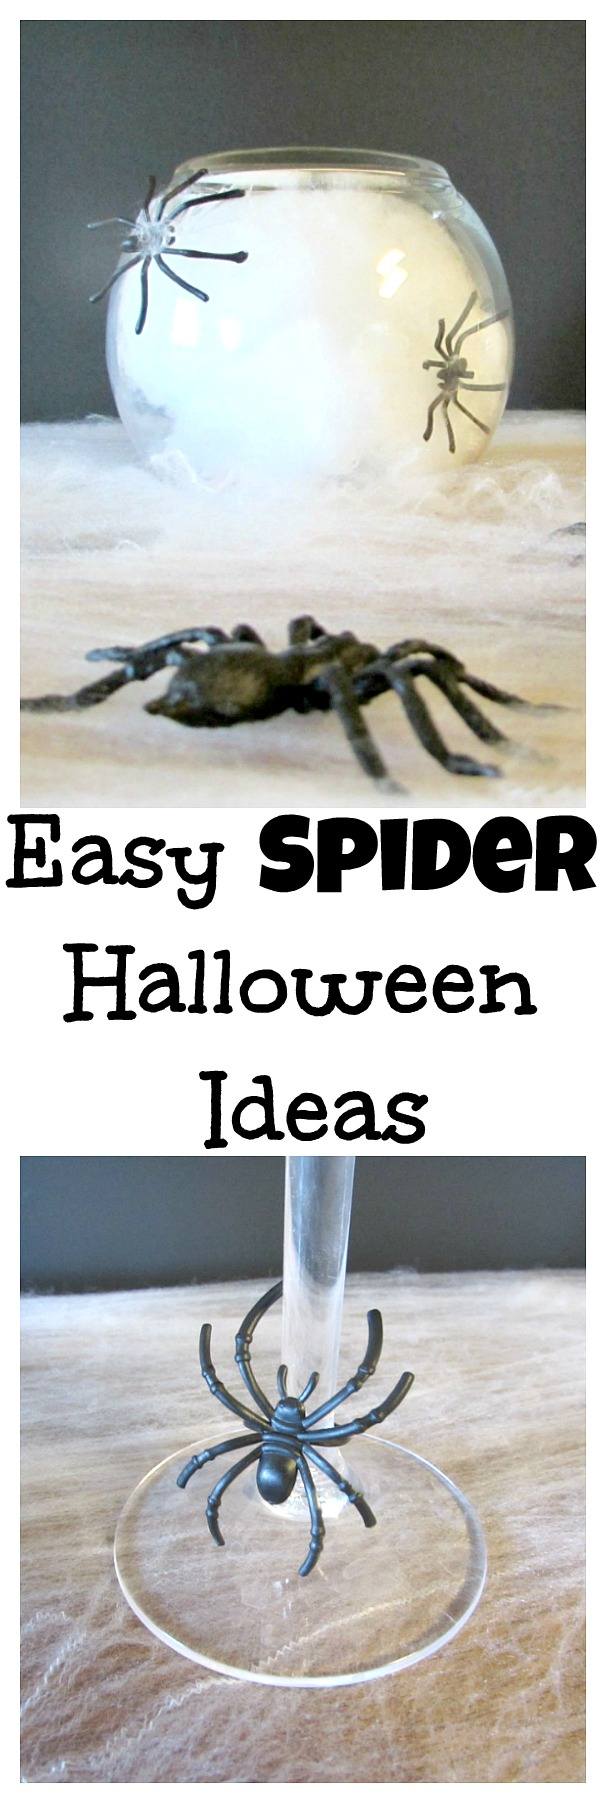 Easy spider Halloween ideas